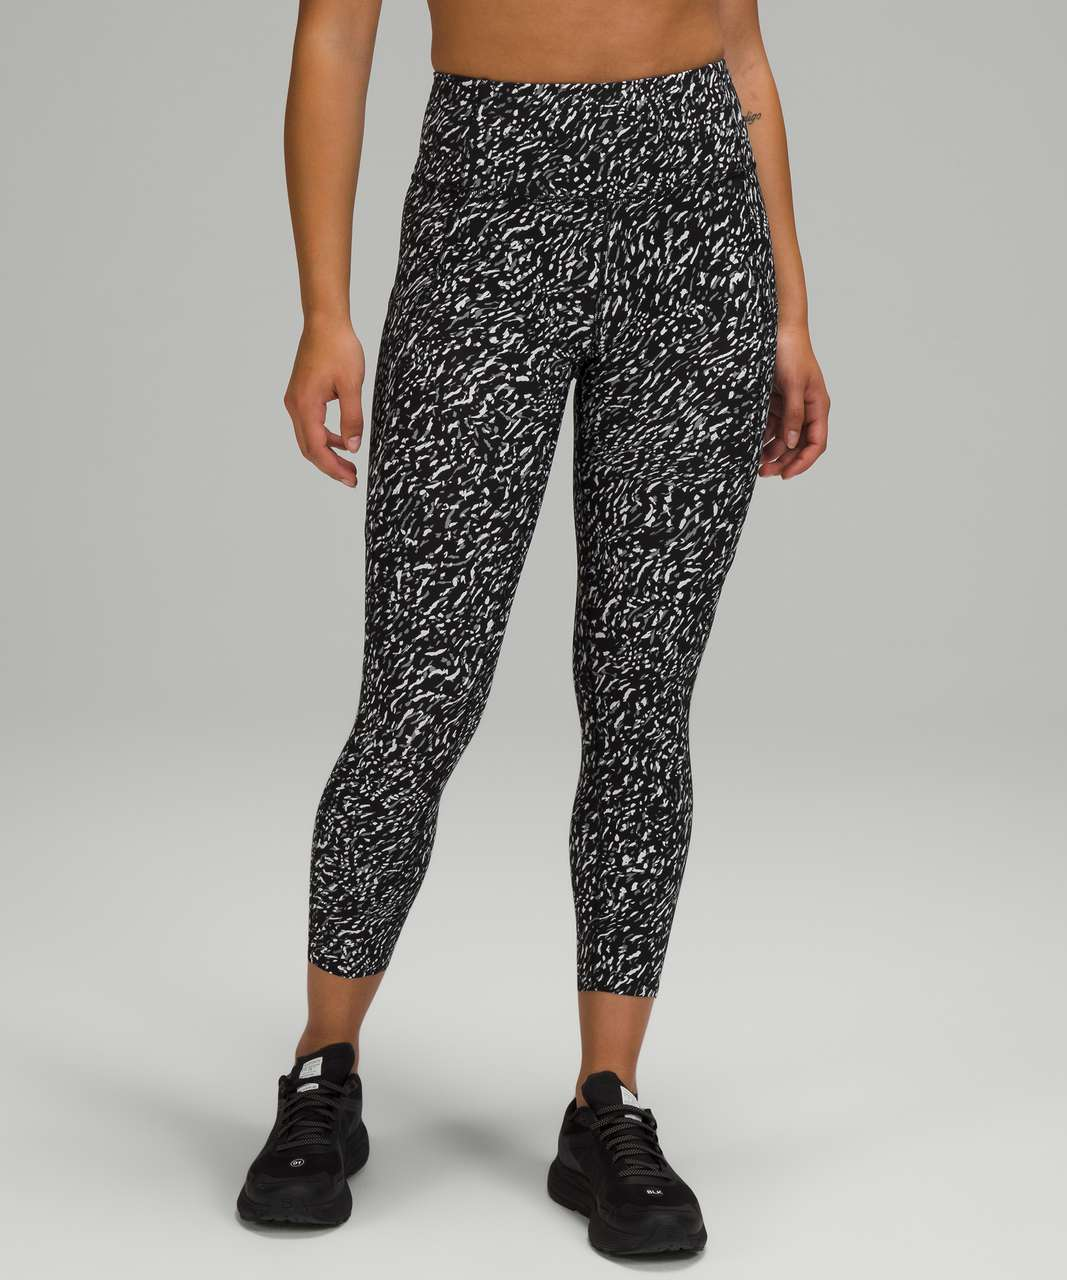 """Lululemon Fast and Free High Rise Crop 23"""" - Speckle Trail Black Multi"""